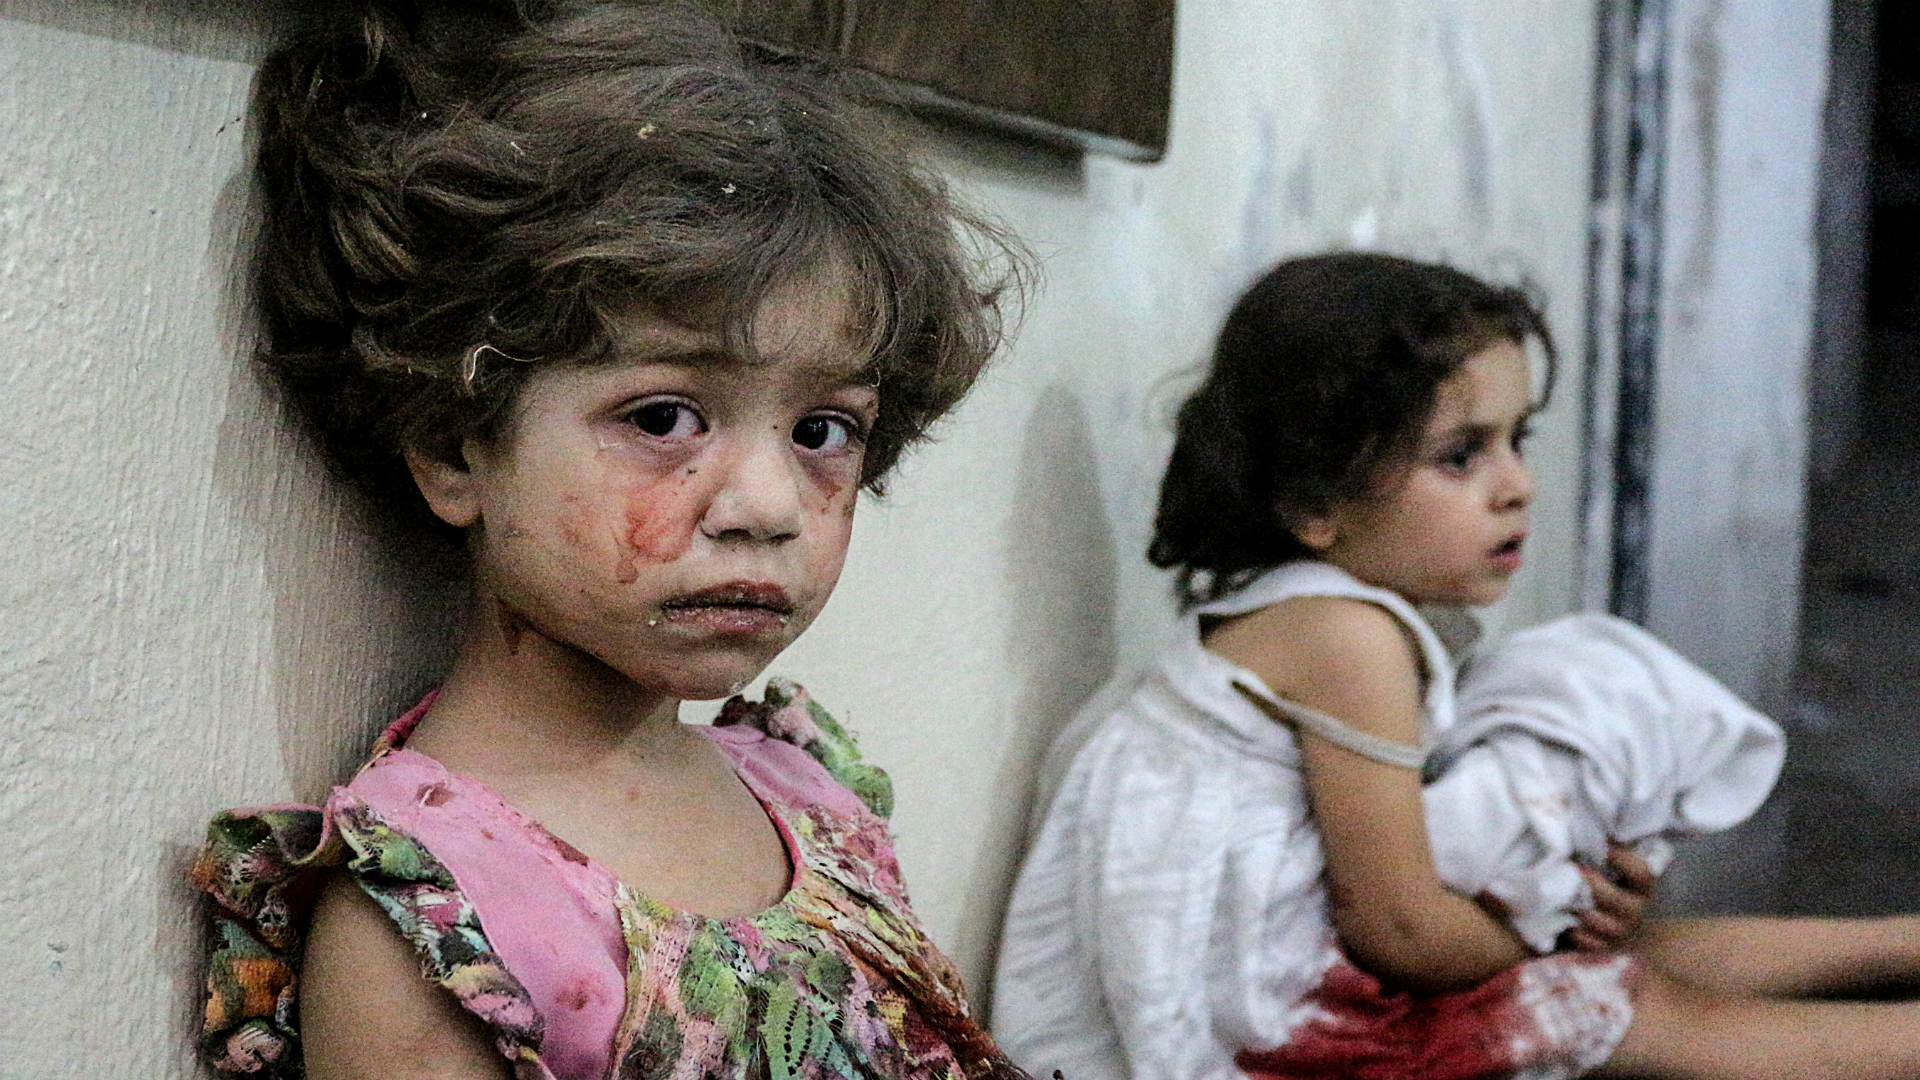 what is happening in syria